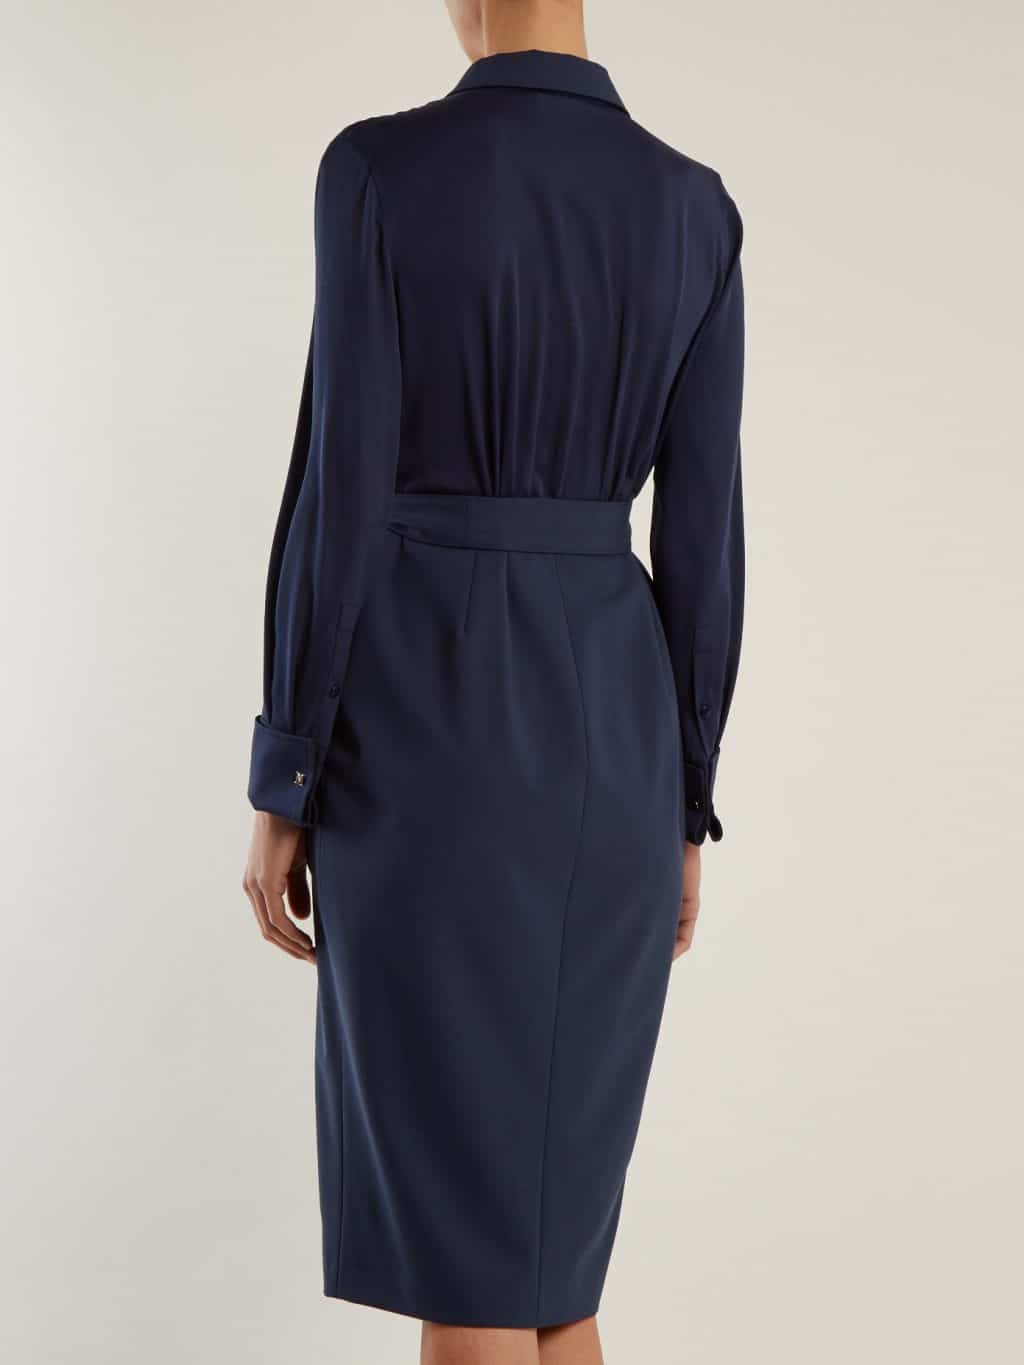 max mara harold indigo blue dress we select dresses